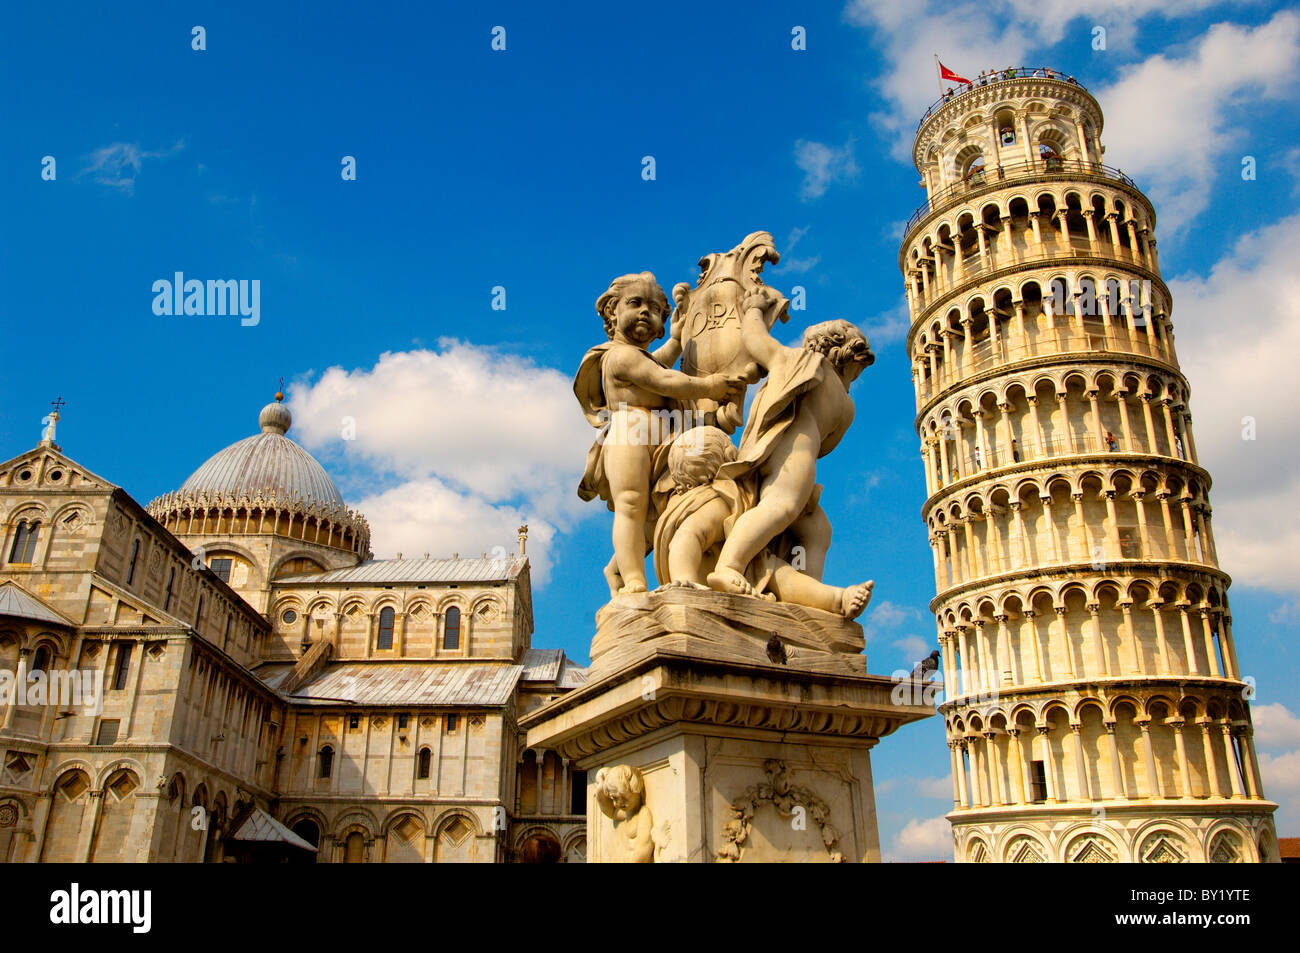 Catherderal and Leaning Tower - Piazza del Miracoli - Pisa - Italy - Stock Image